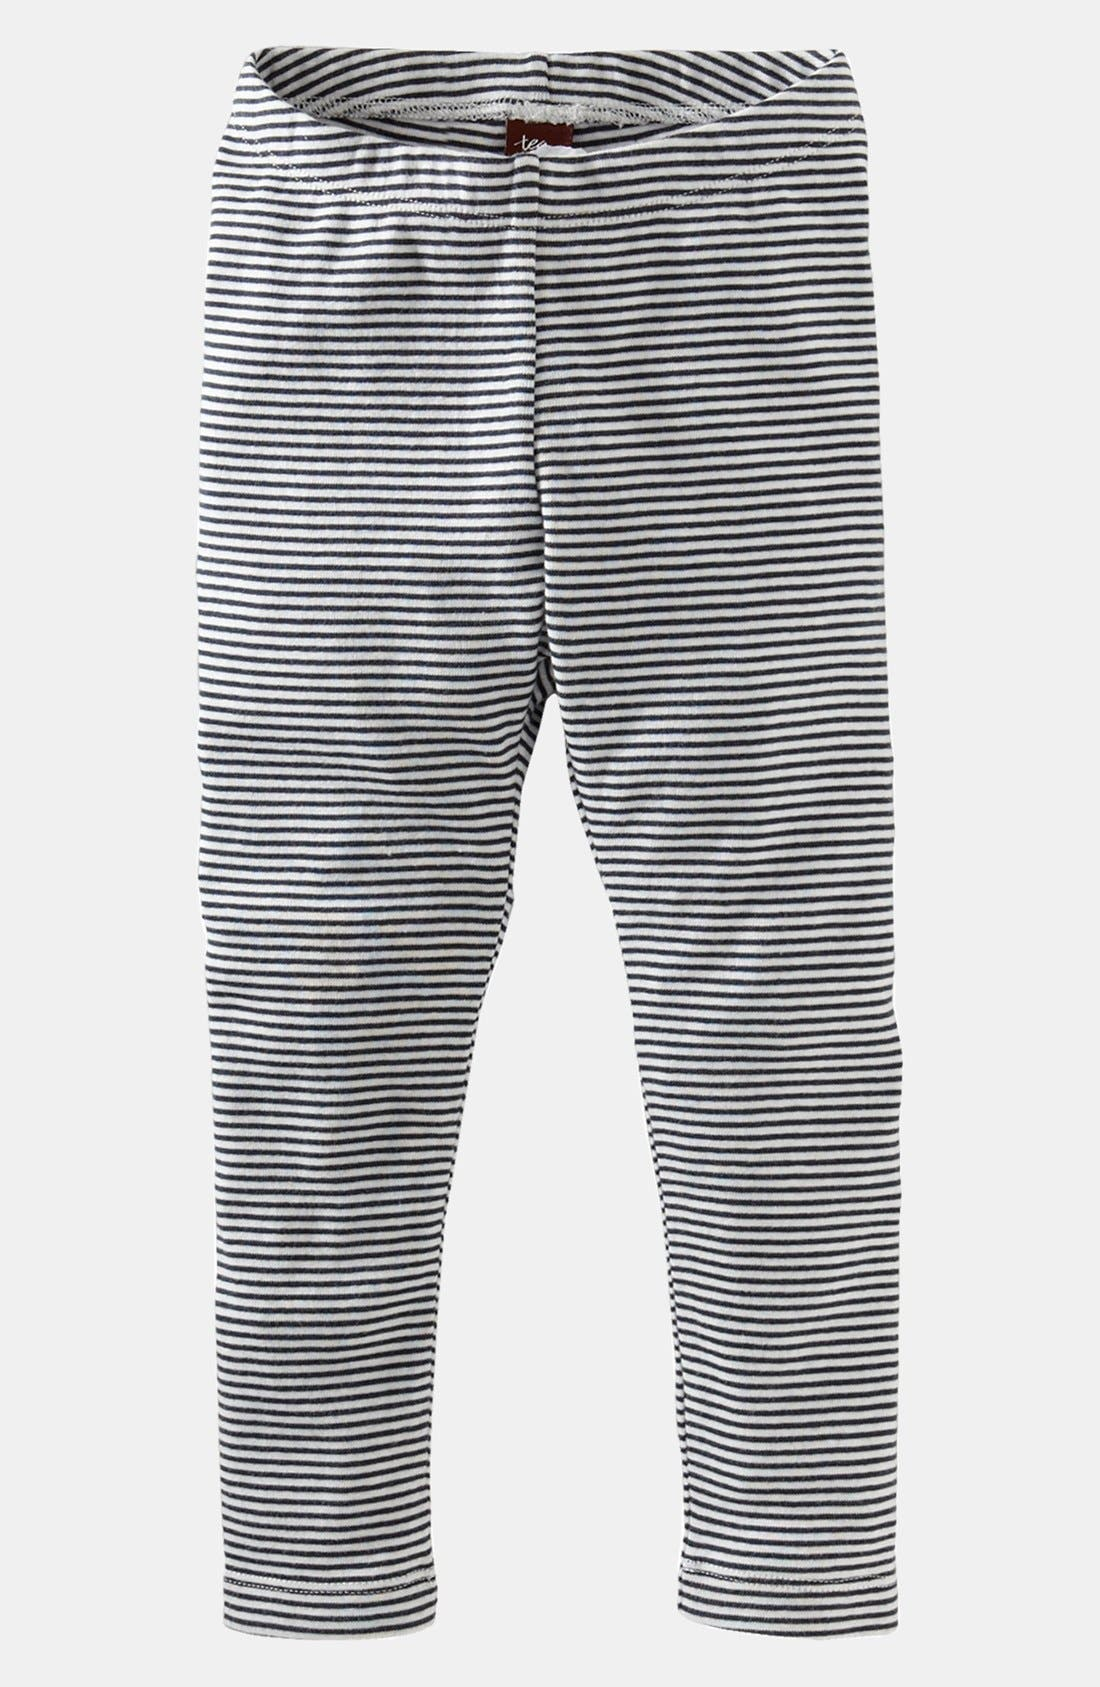 Alternate Image 1 Selected - Tea Collection Stripe Leggings (Toddler Girls)